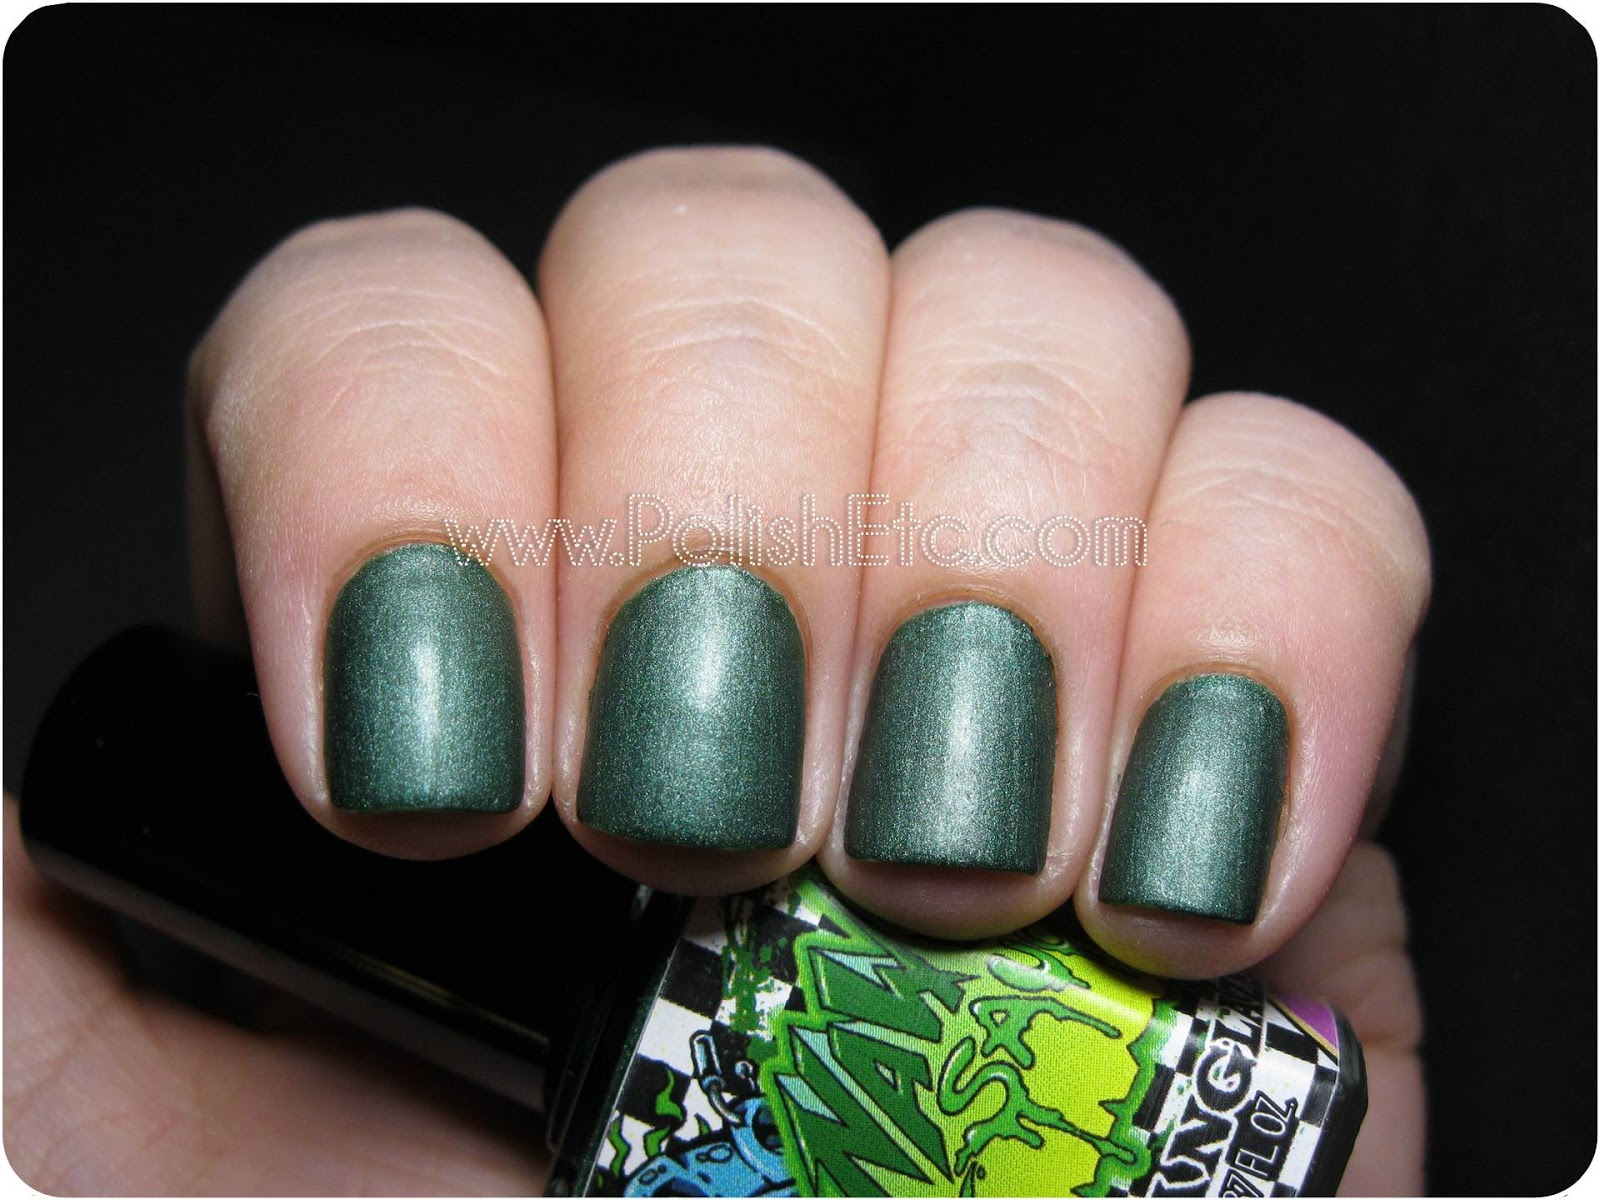 ManGlaze Nawesome Sauce Swatches and Review. - Polish Etc.